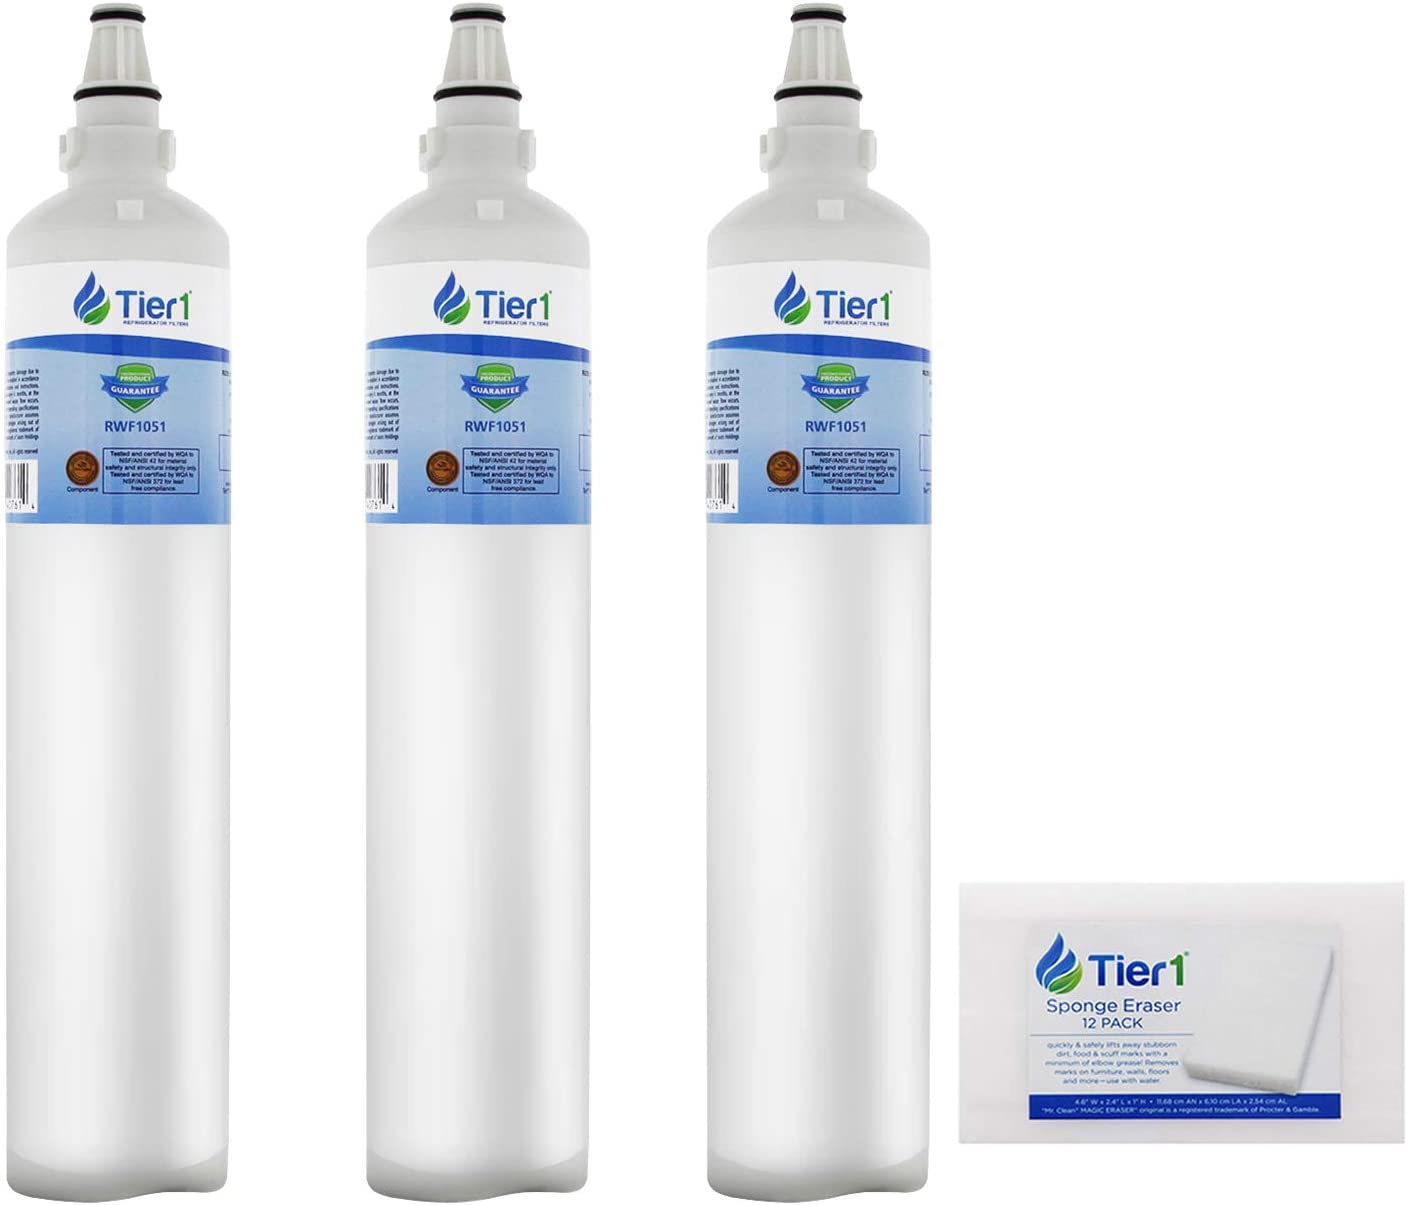 Max 51% OFF Tier1 Refrigerator Water Filter Replacement for LG LT600P 5231JA Over item handling ☆